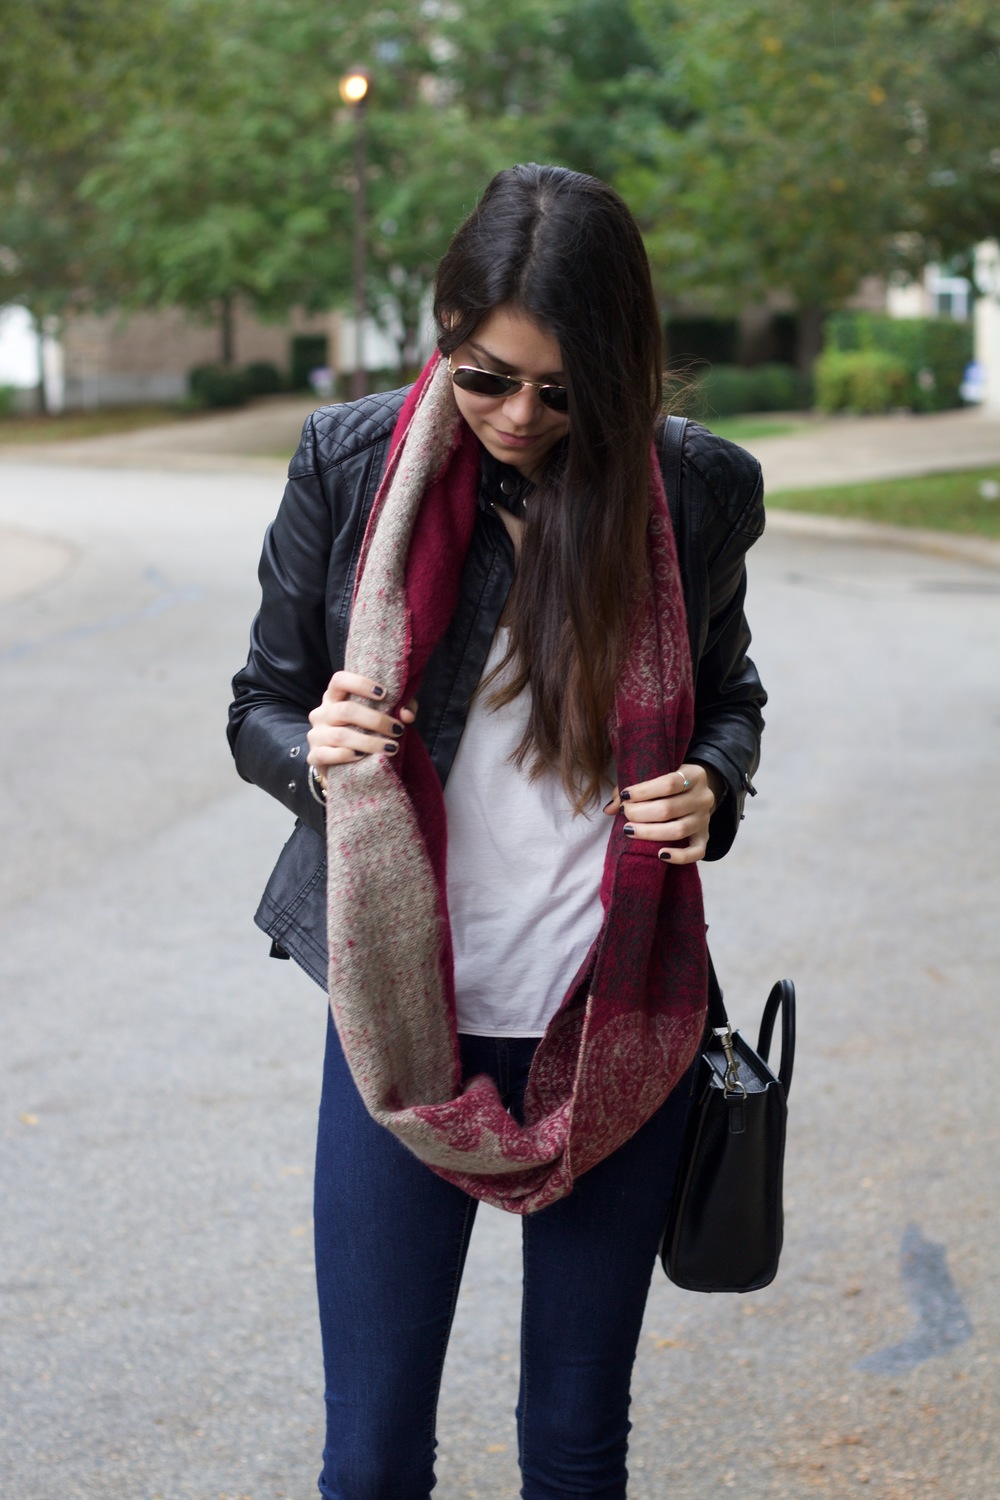 throw over the scarf, shake it a bit so you release any twists or folds and position the scarf so that it is comfortable on your neck